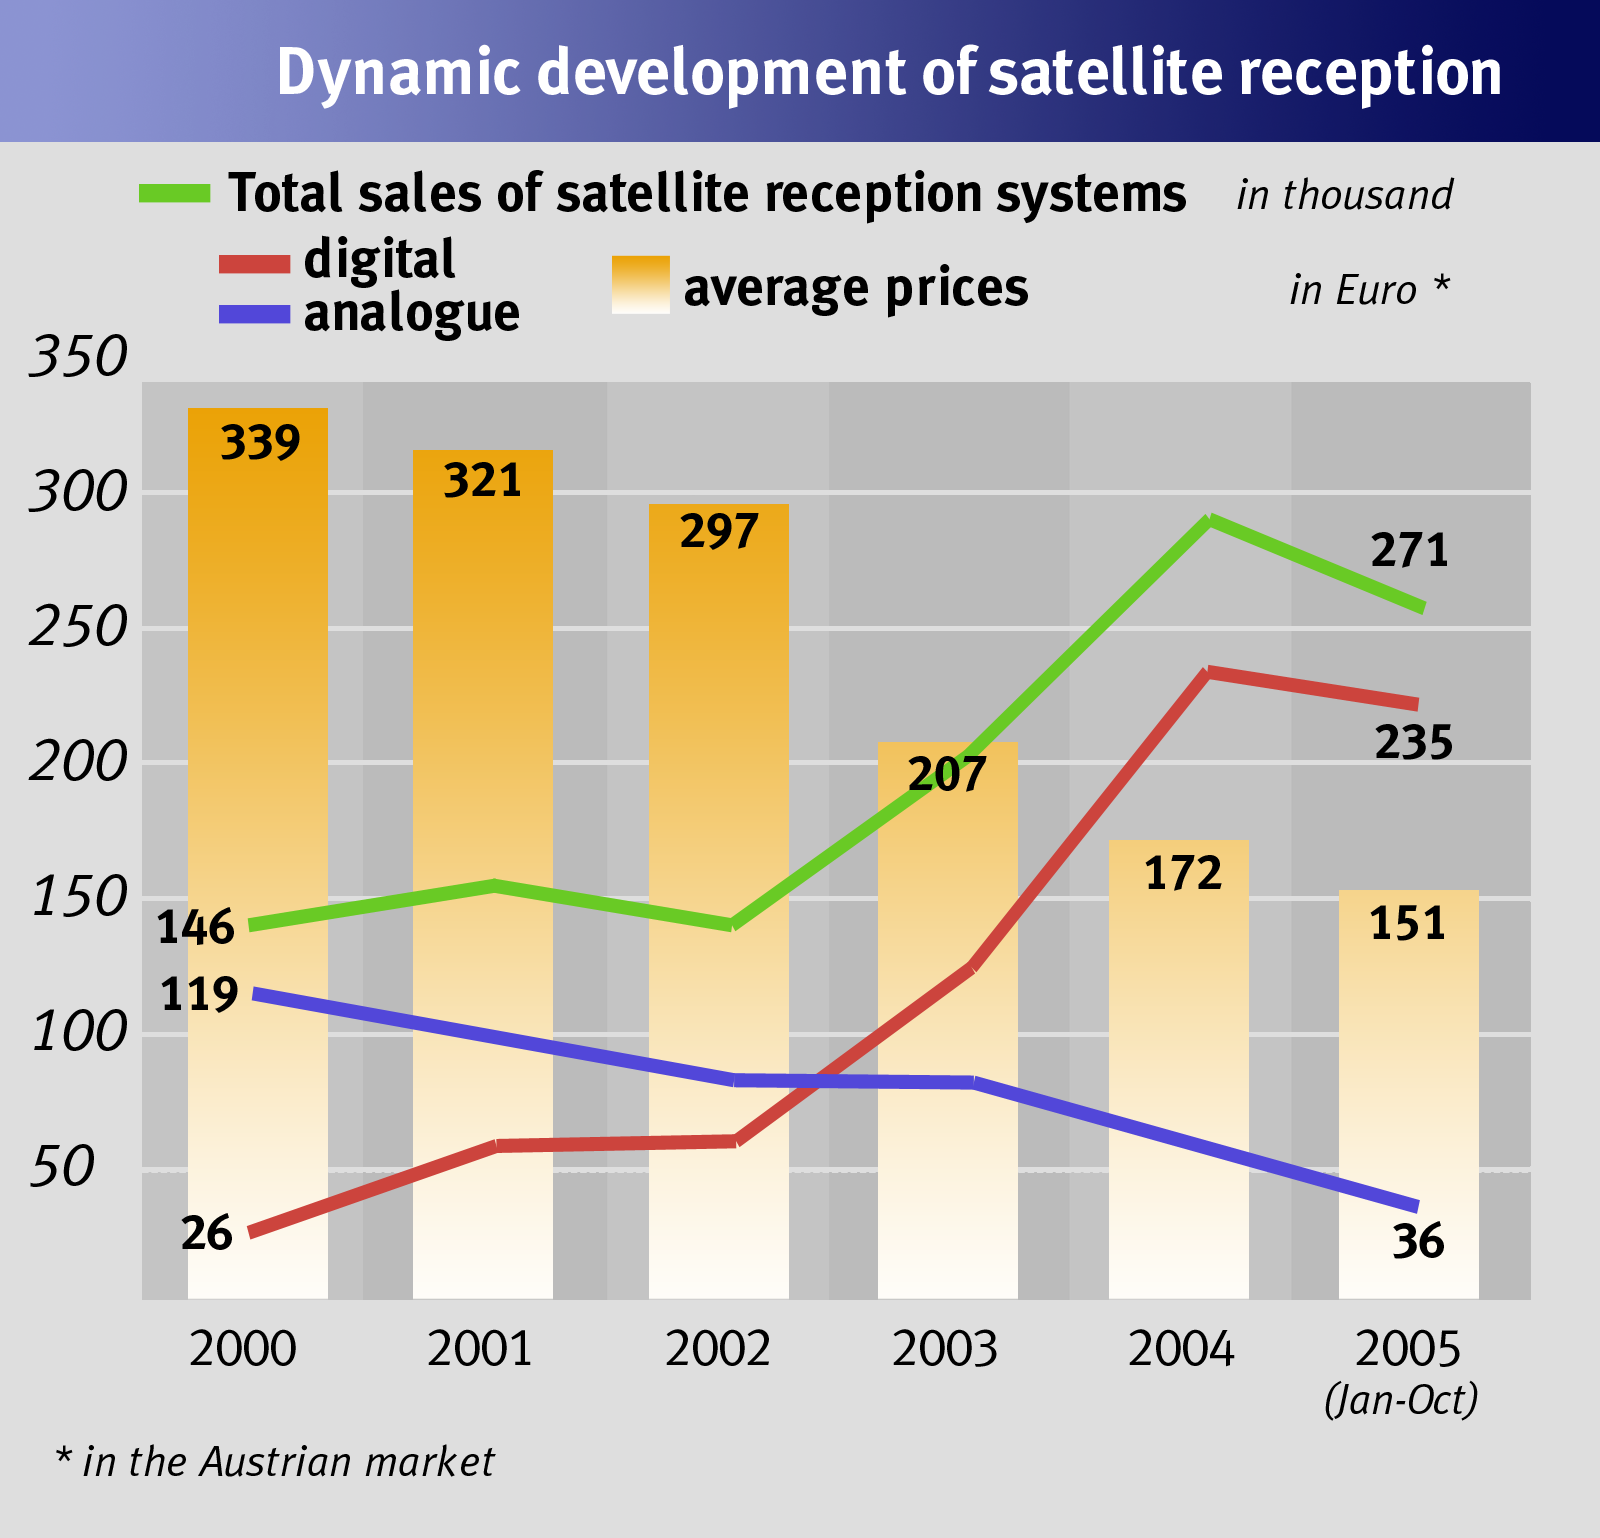 Source: Fessel+GfK Illustration: APA Opportunities and problems of digital satellite television The increase in sales of these set-top boxes, however, cannot be merely attributed to falling prices.